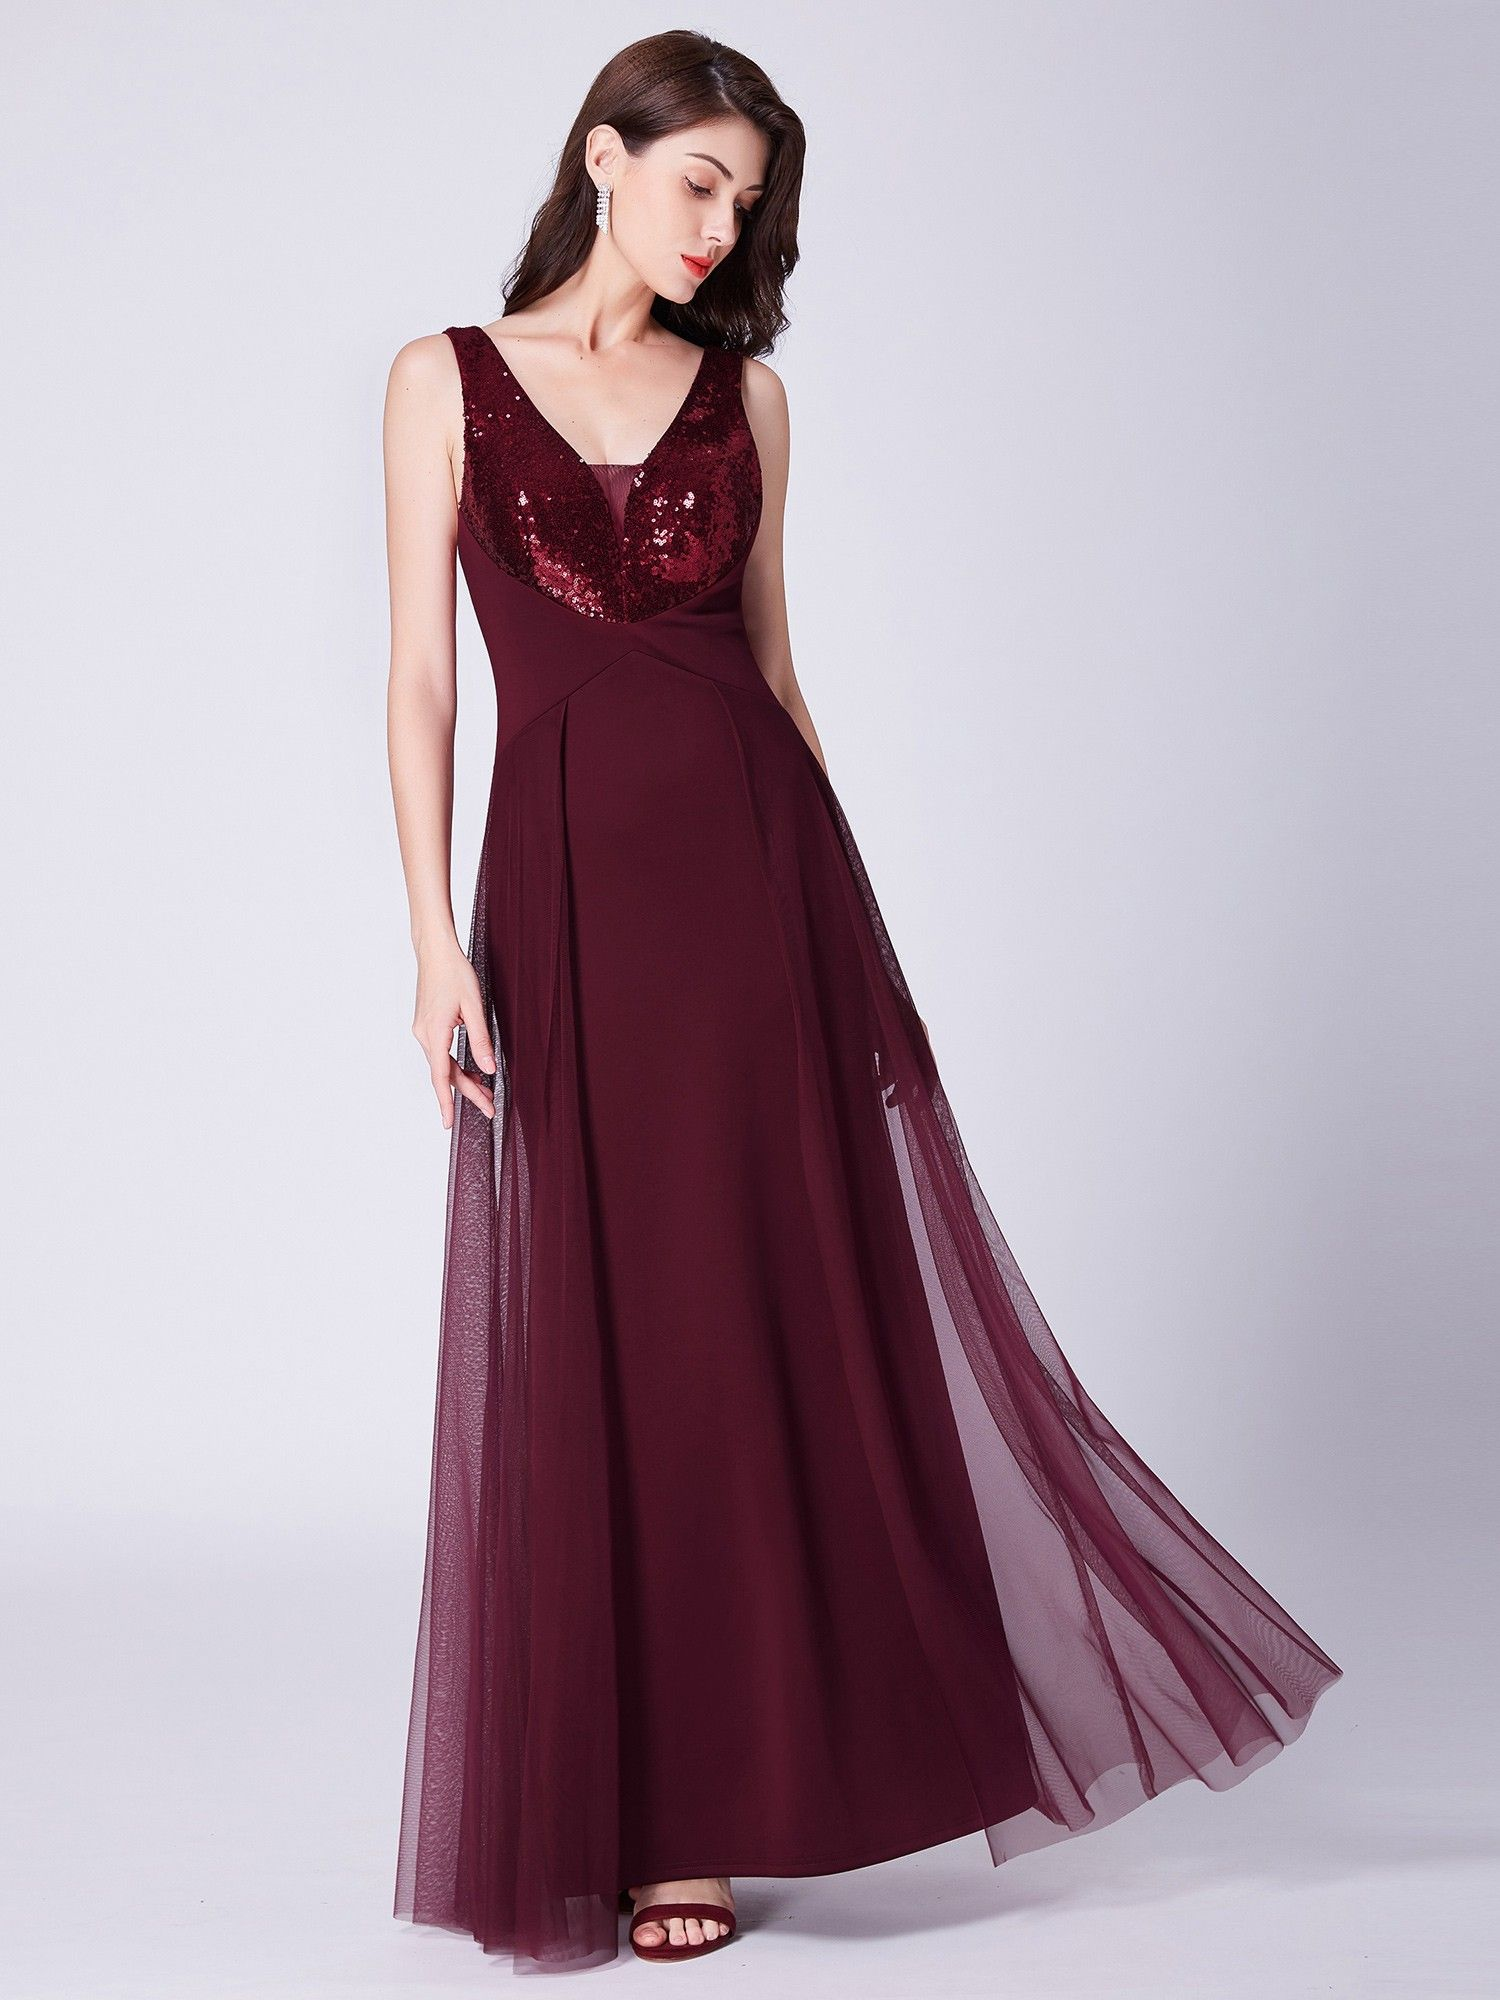 https://www.ever-pretty.com/us/floor-length-burgundy-sequin-evening-dress-ep07453.html?utm_source=blog&utm_medium=post&utm_campaign=1142